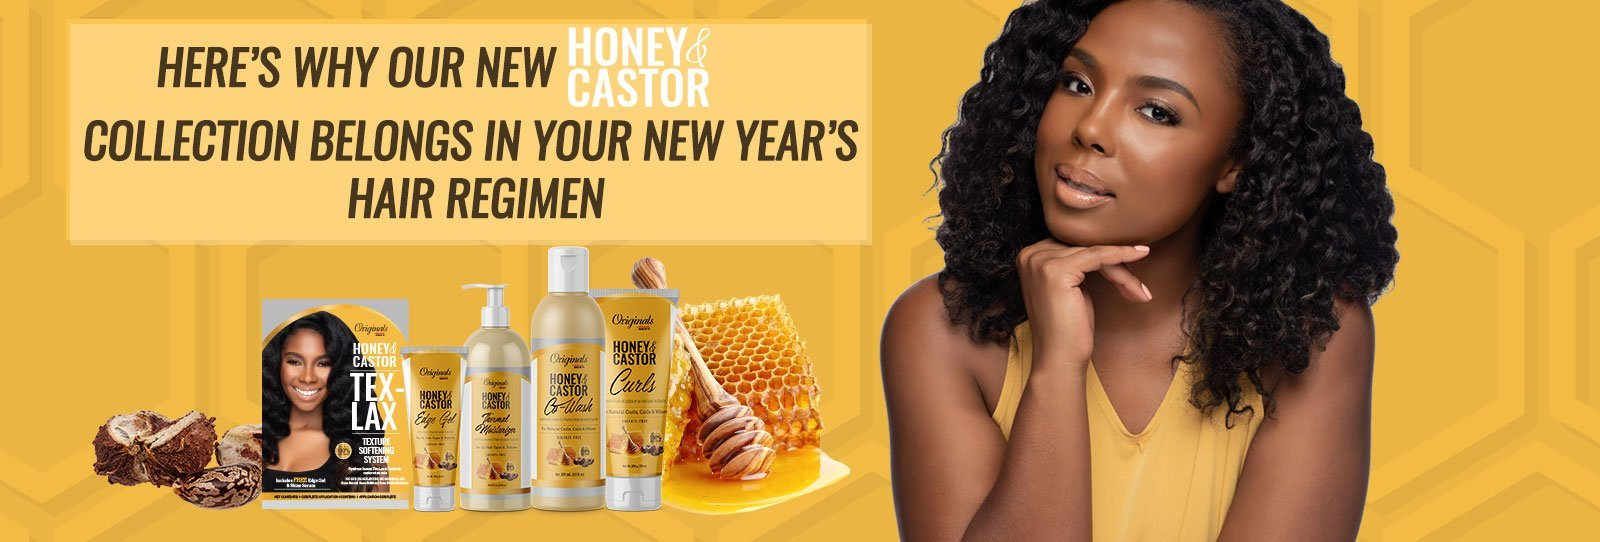 New Collection On The Block: Honey & Castor 2